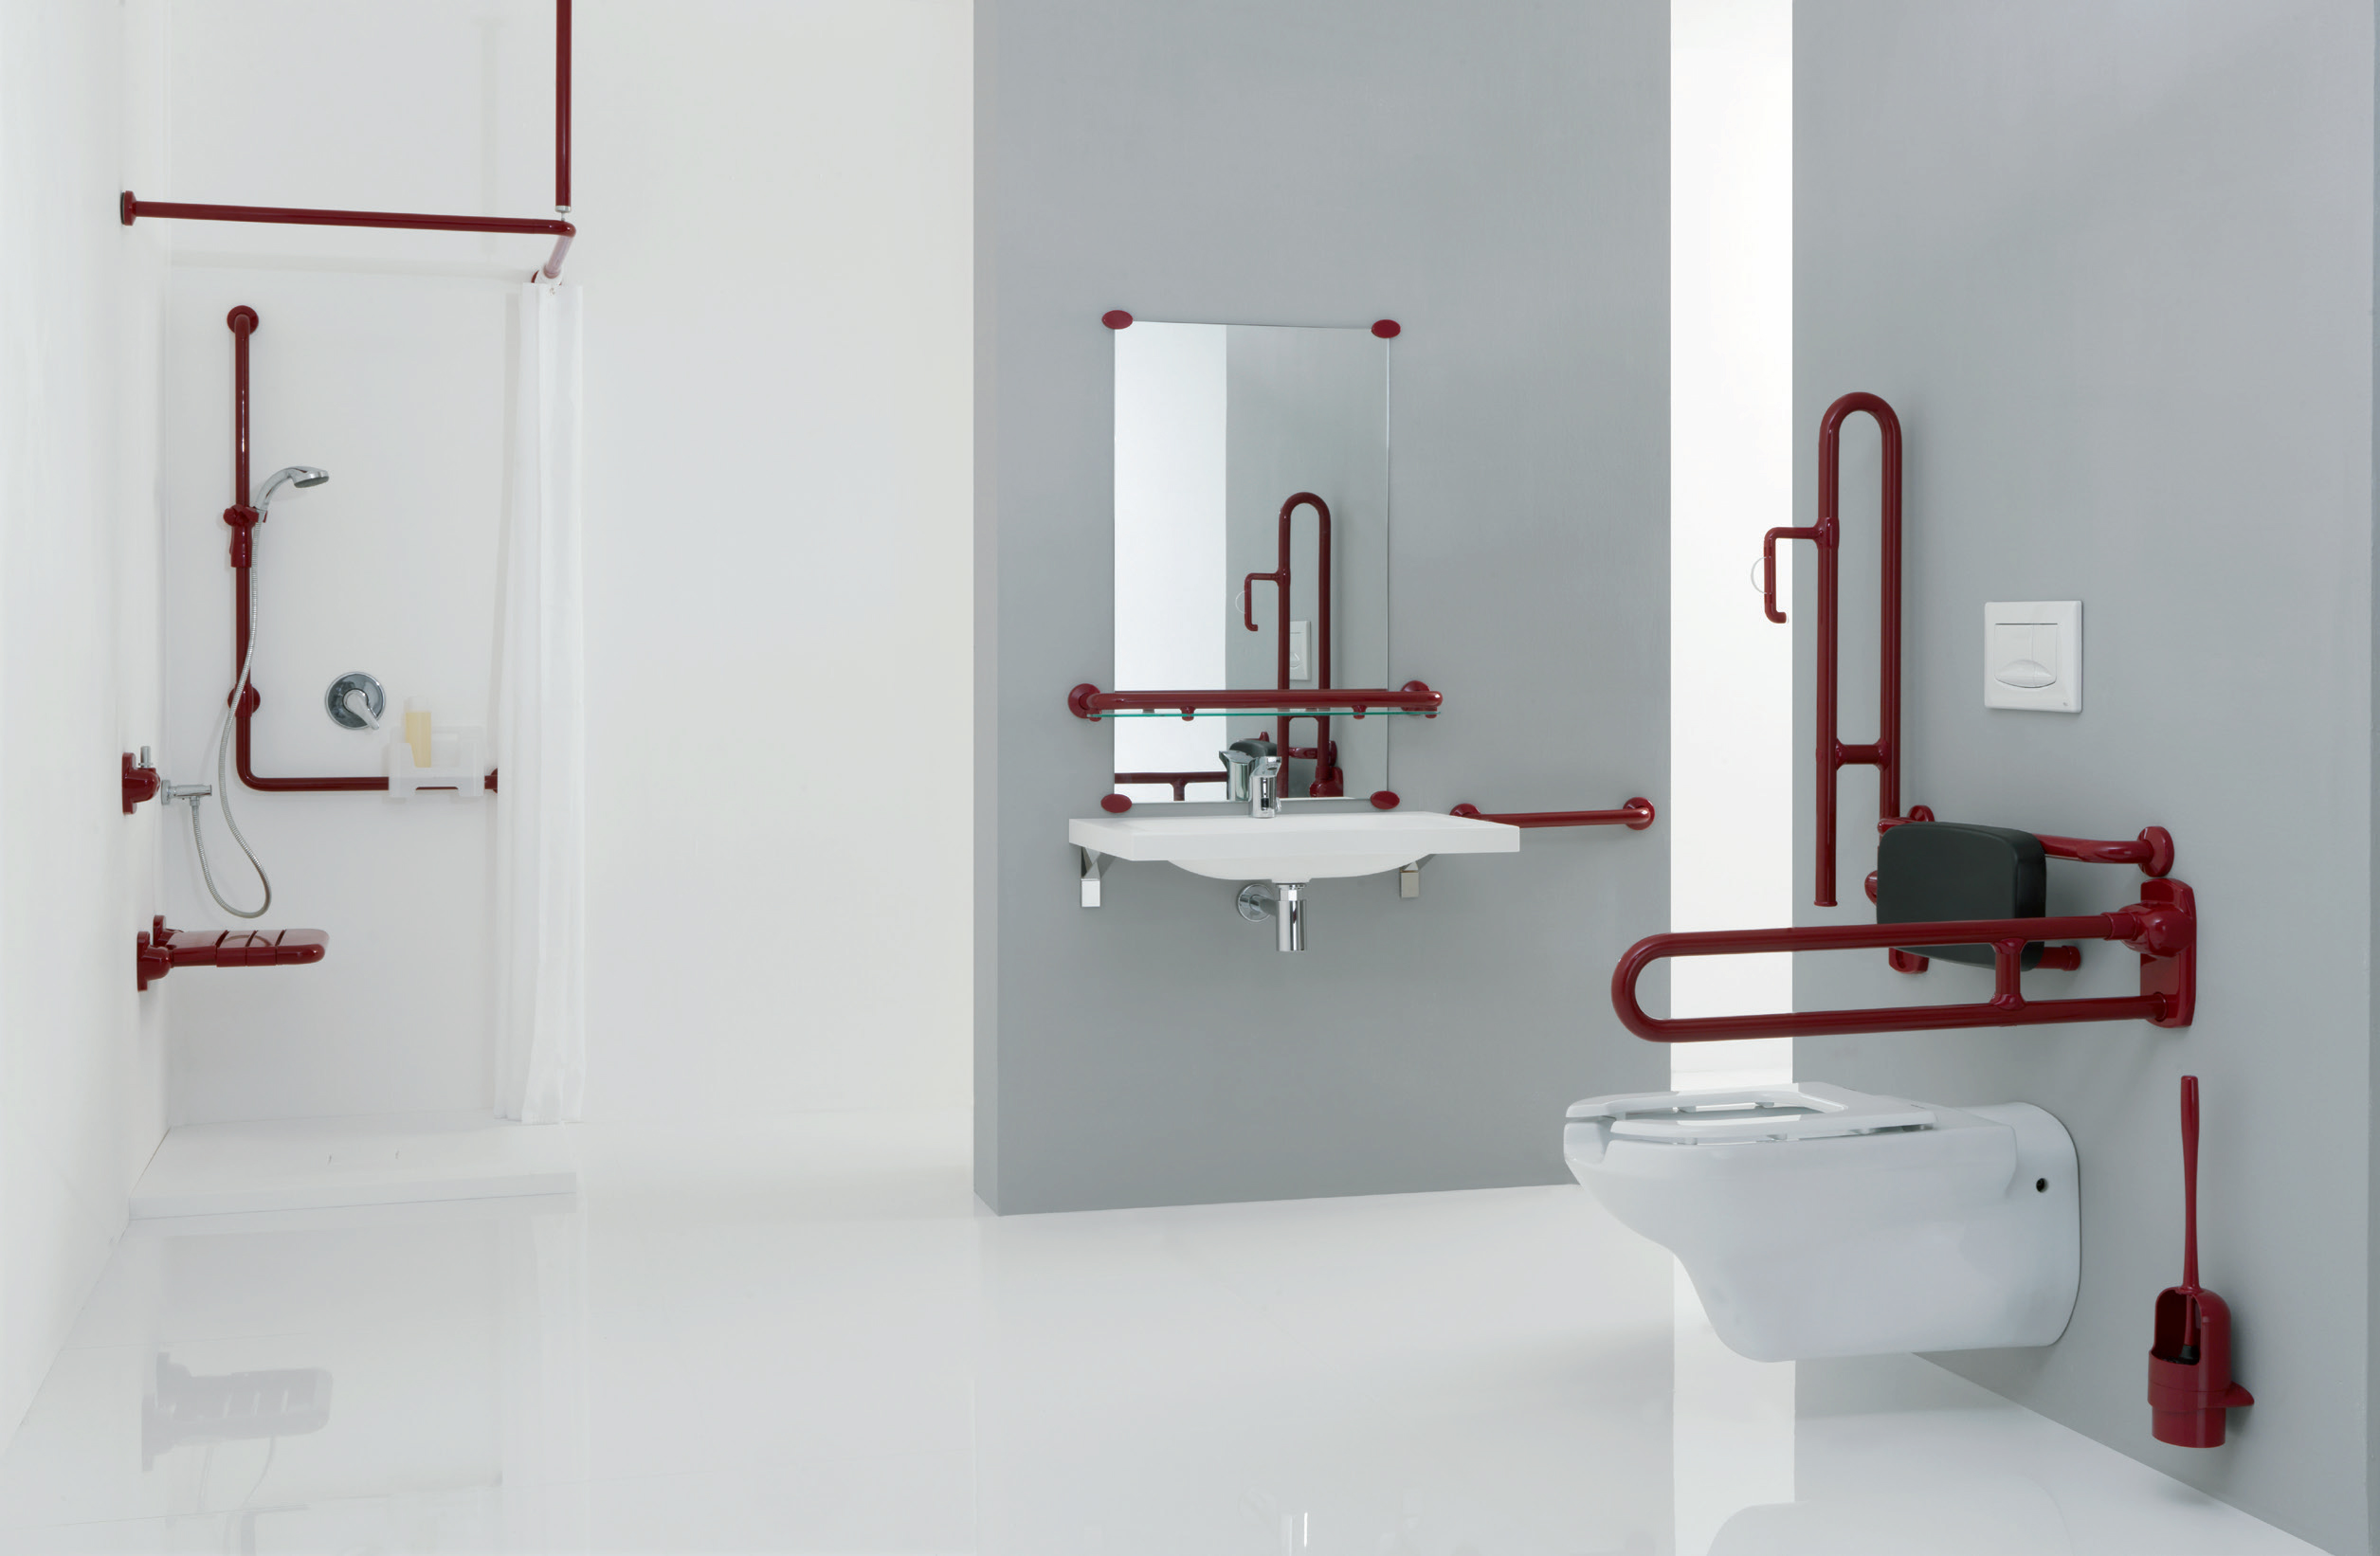 Design for all il bagno